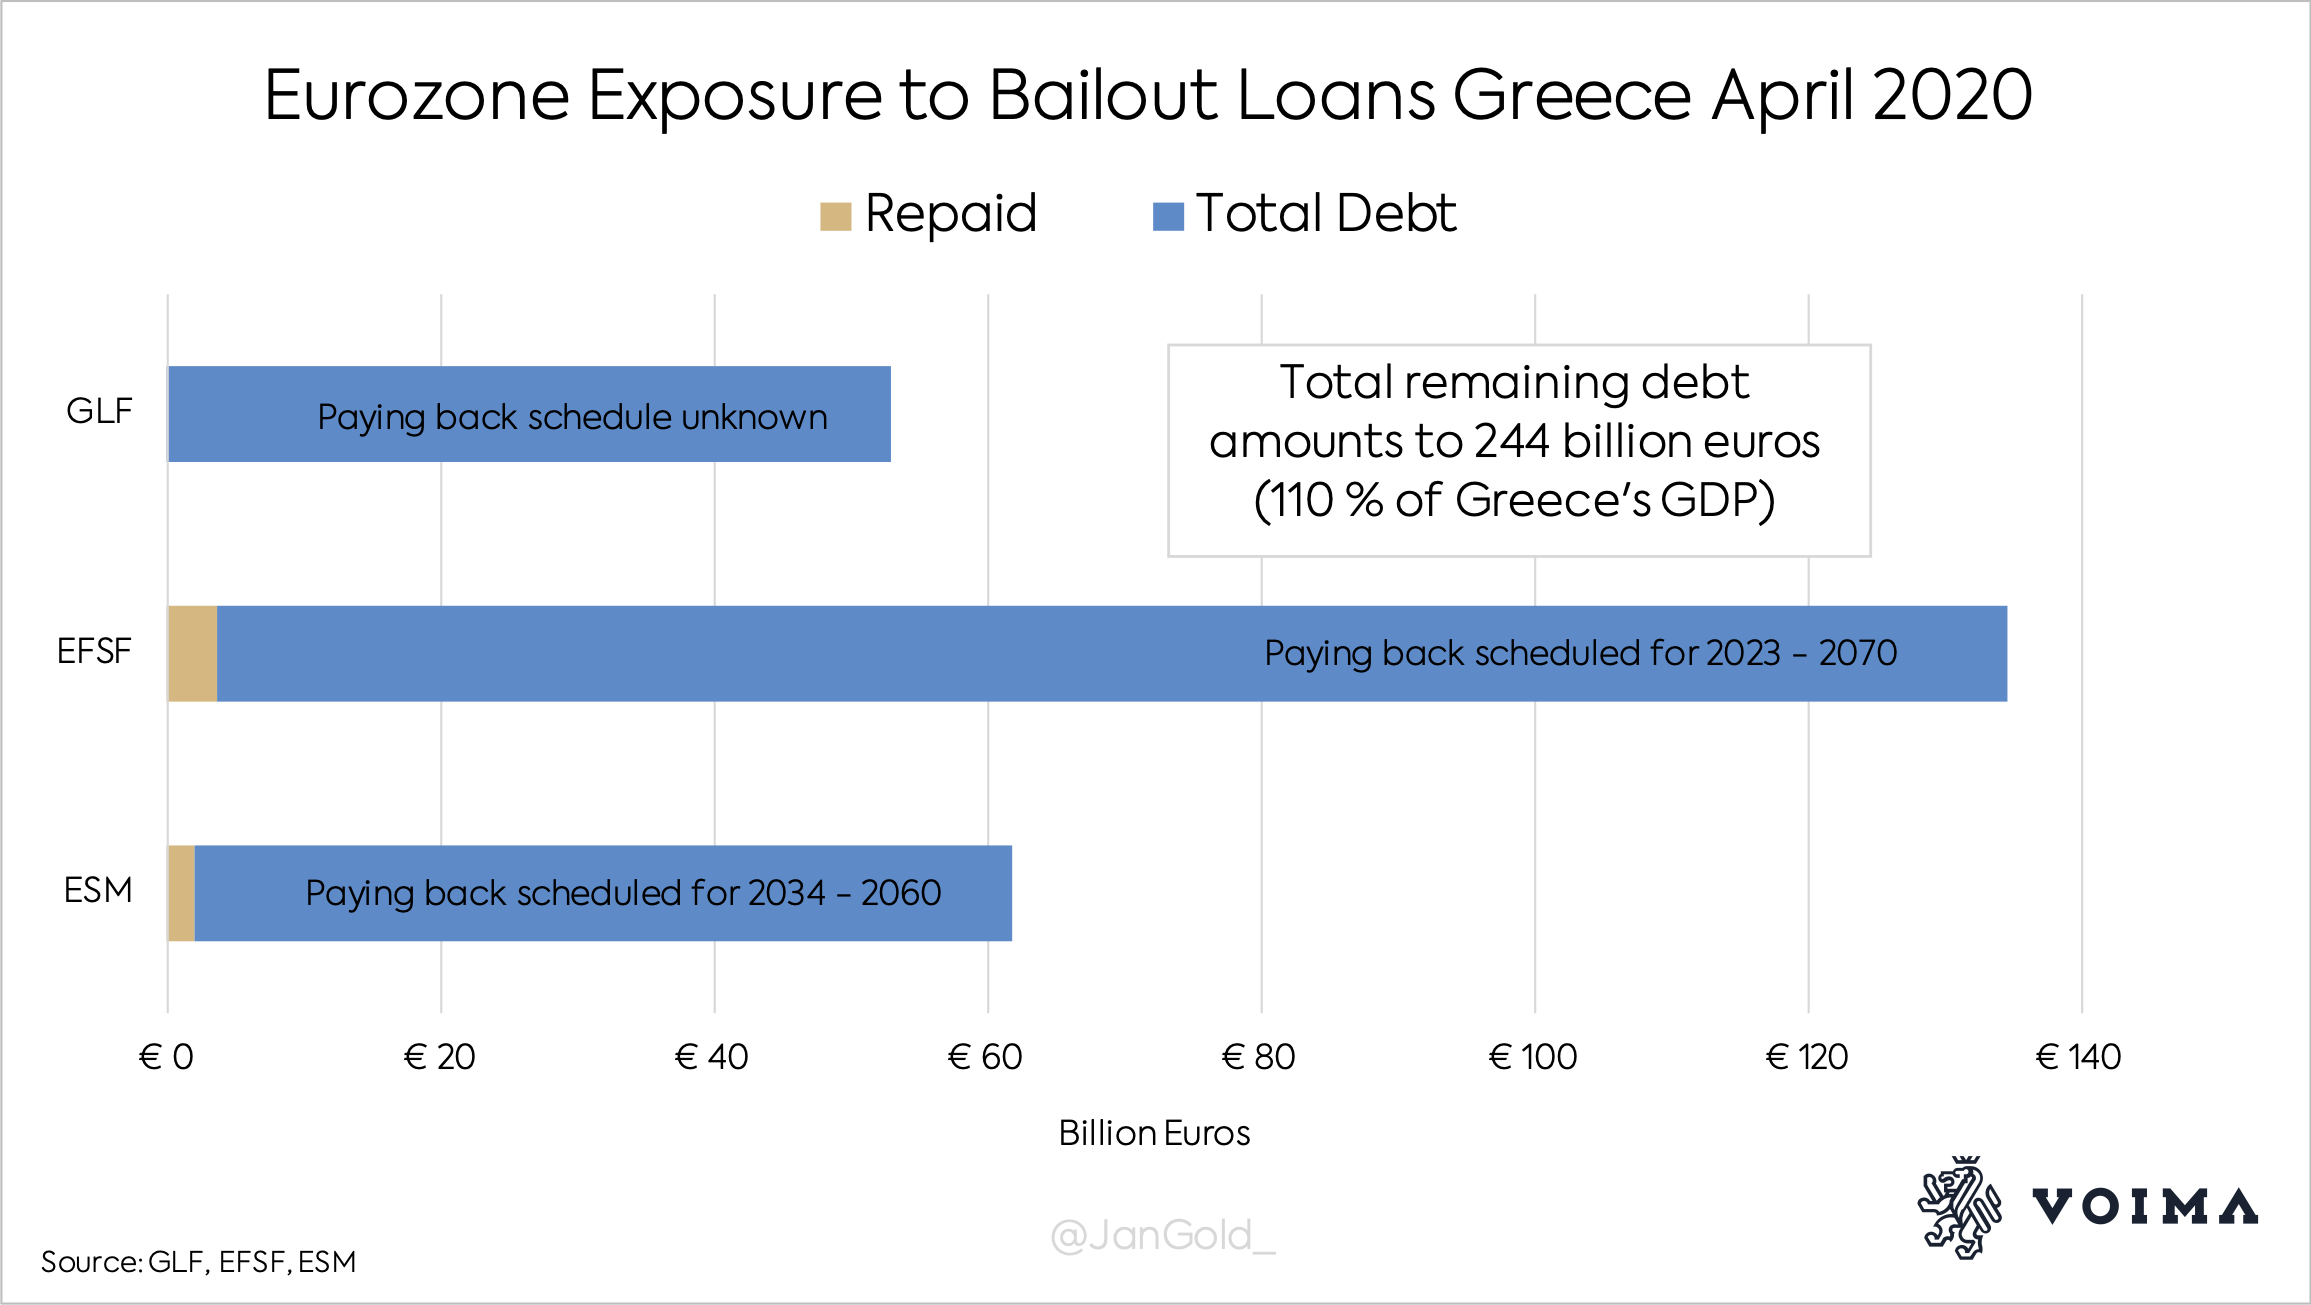 Eurozone Exposure to Bailout Loans Greece April 2020